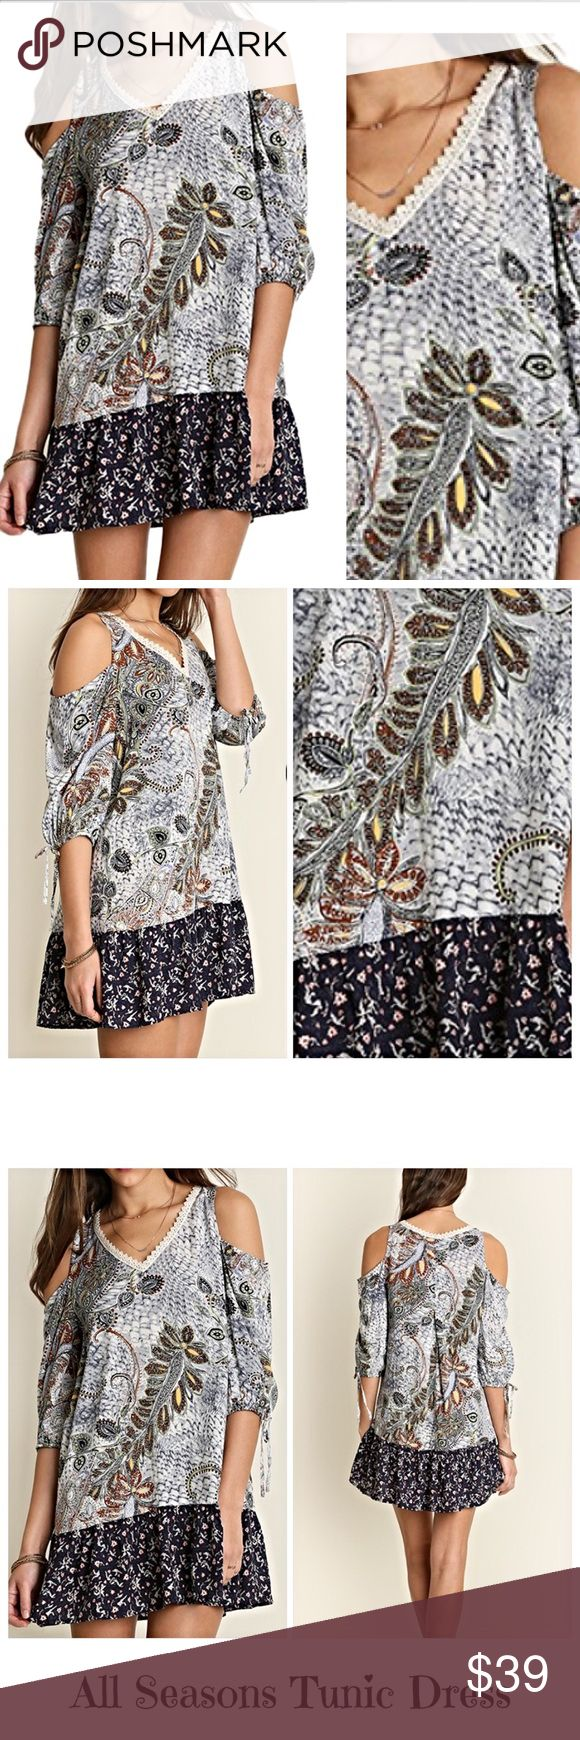 Spotted while shopping on Poshmark: Favorite Paisley Cold Shoulder ...